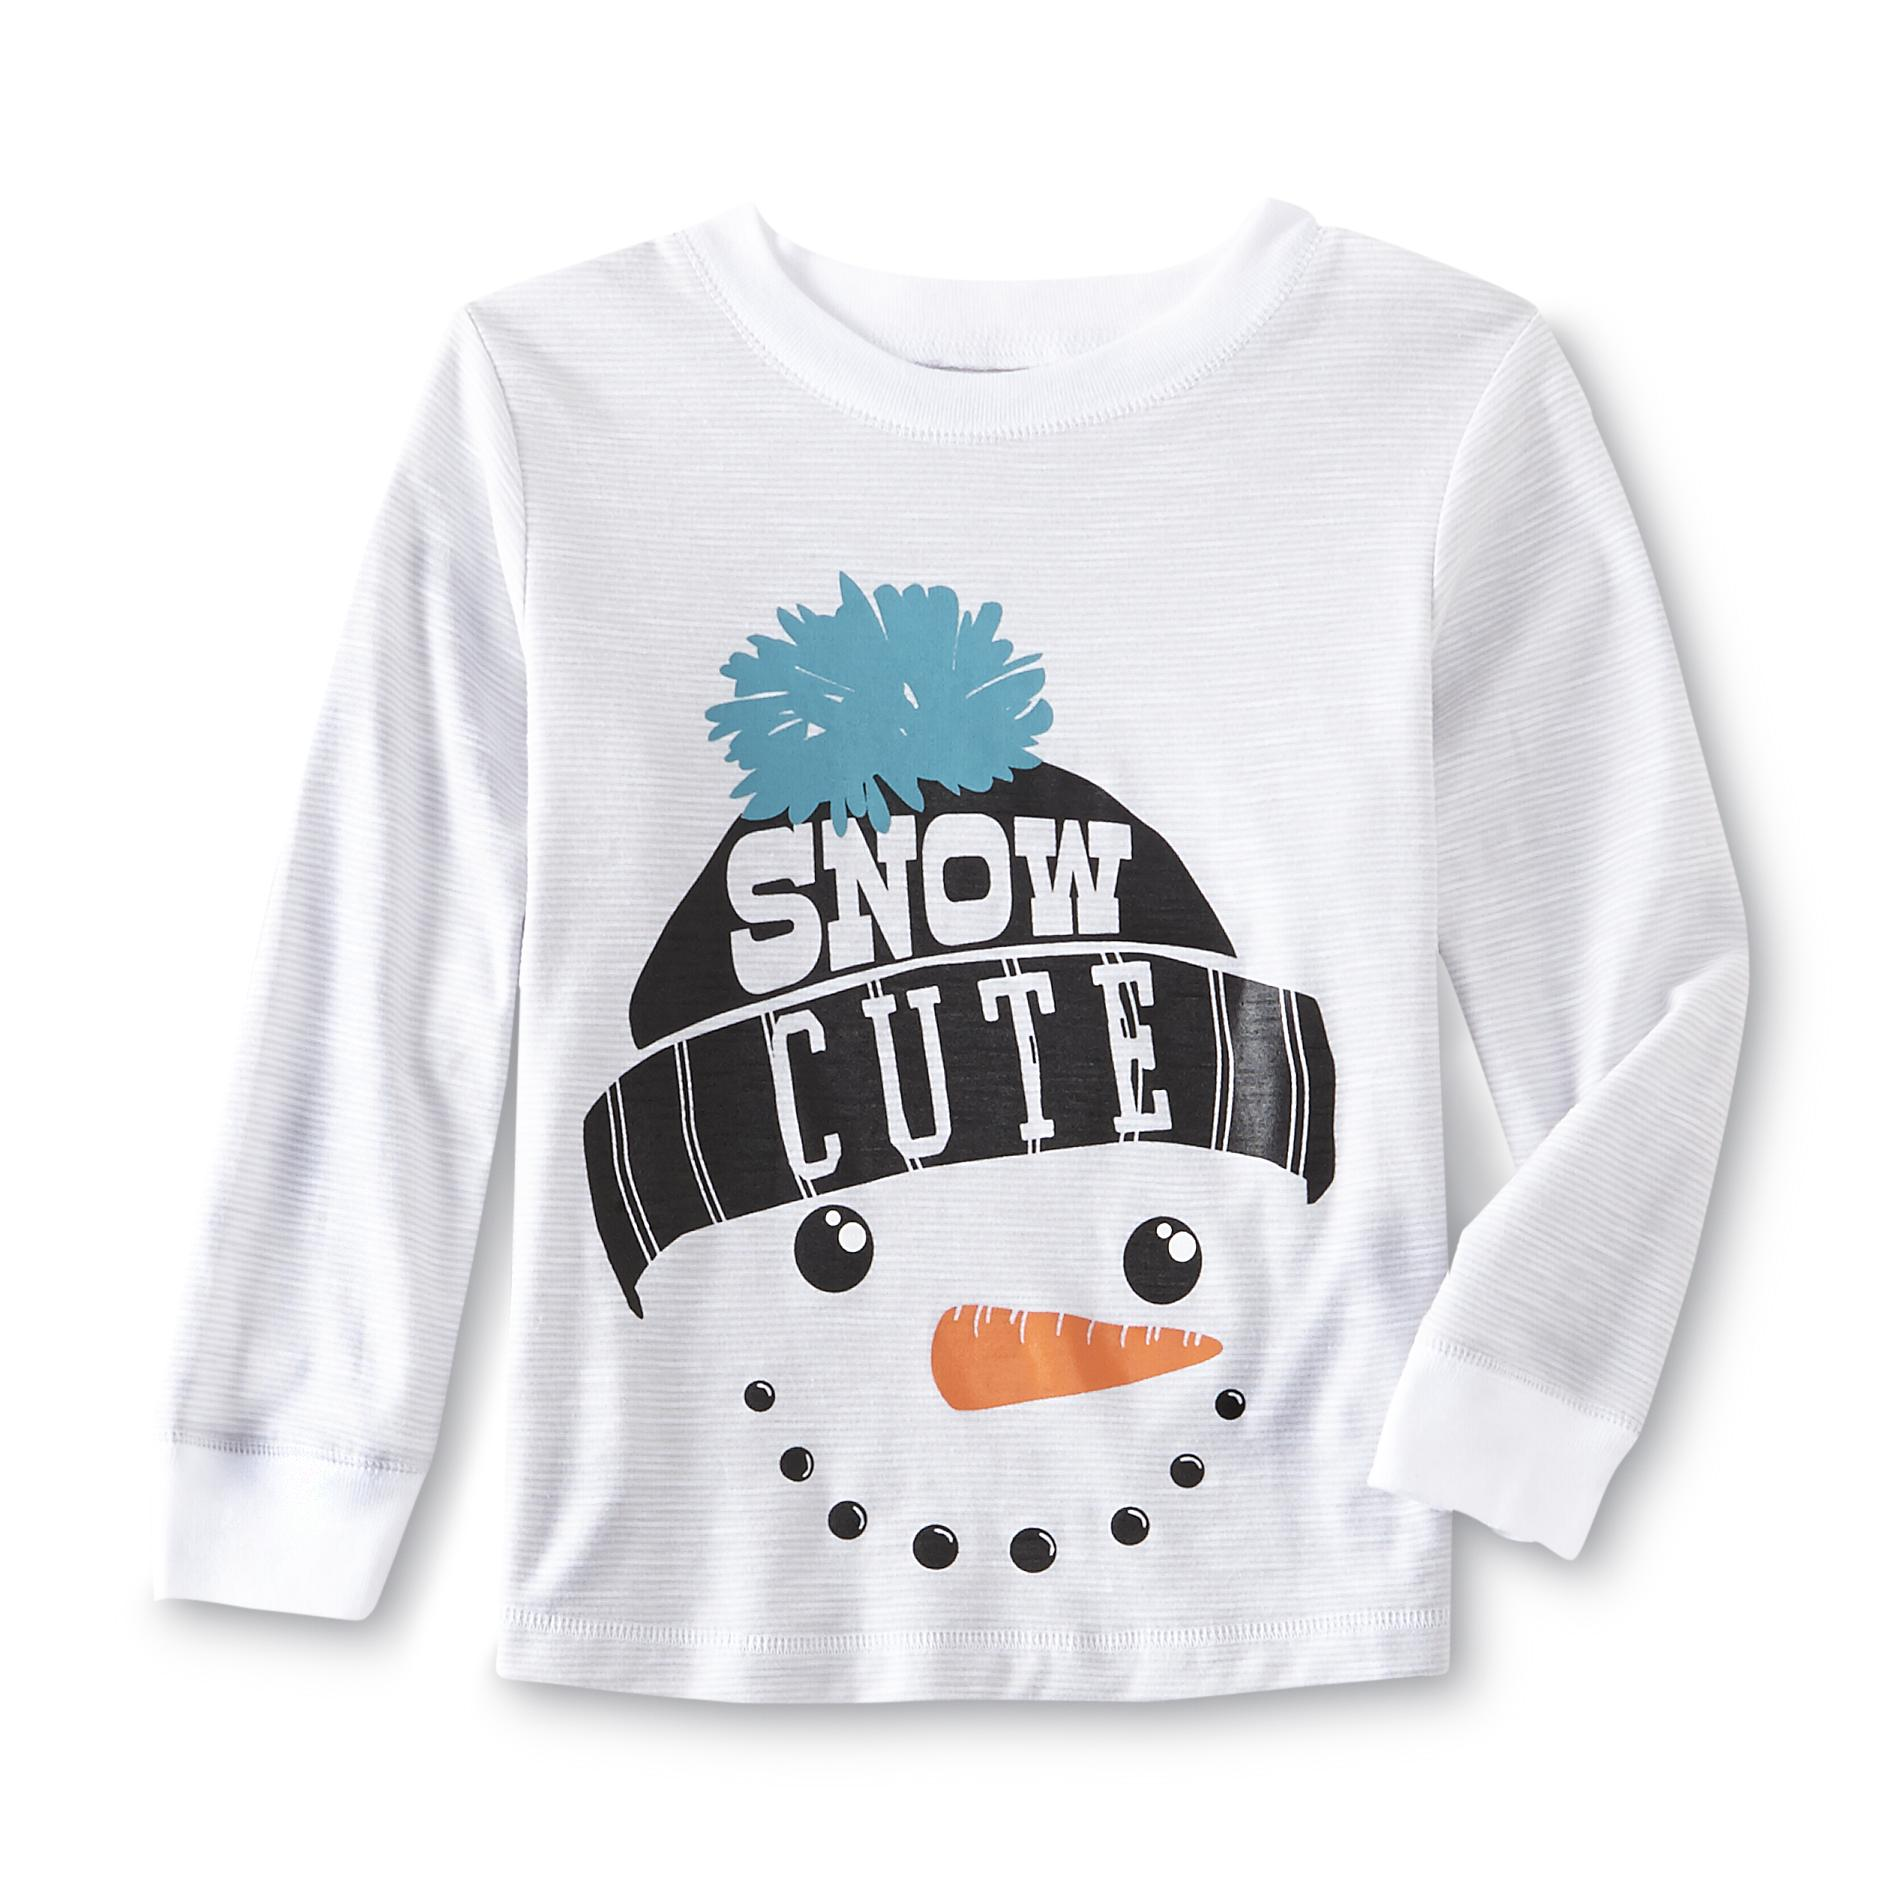 WonderKids Infant & Toddler Boy's Graphic T-Shirt - Snow Cute